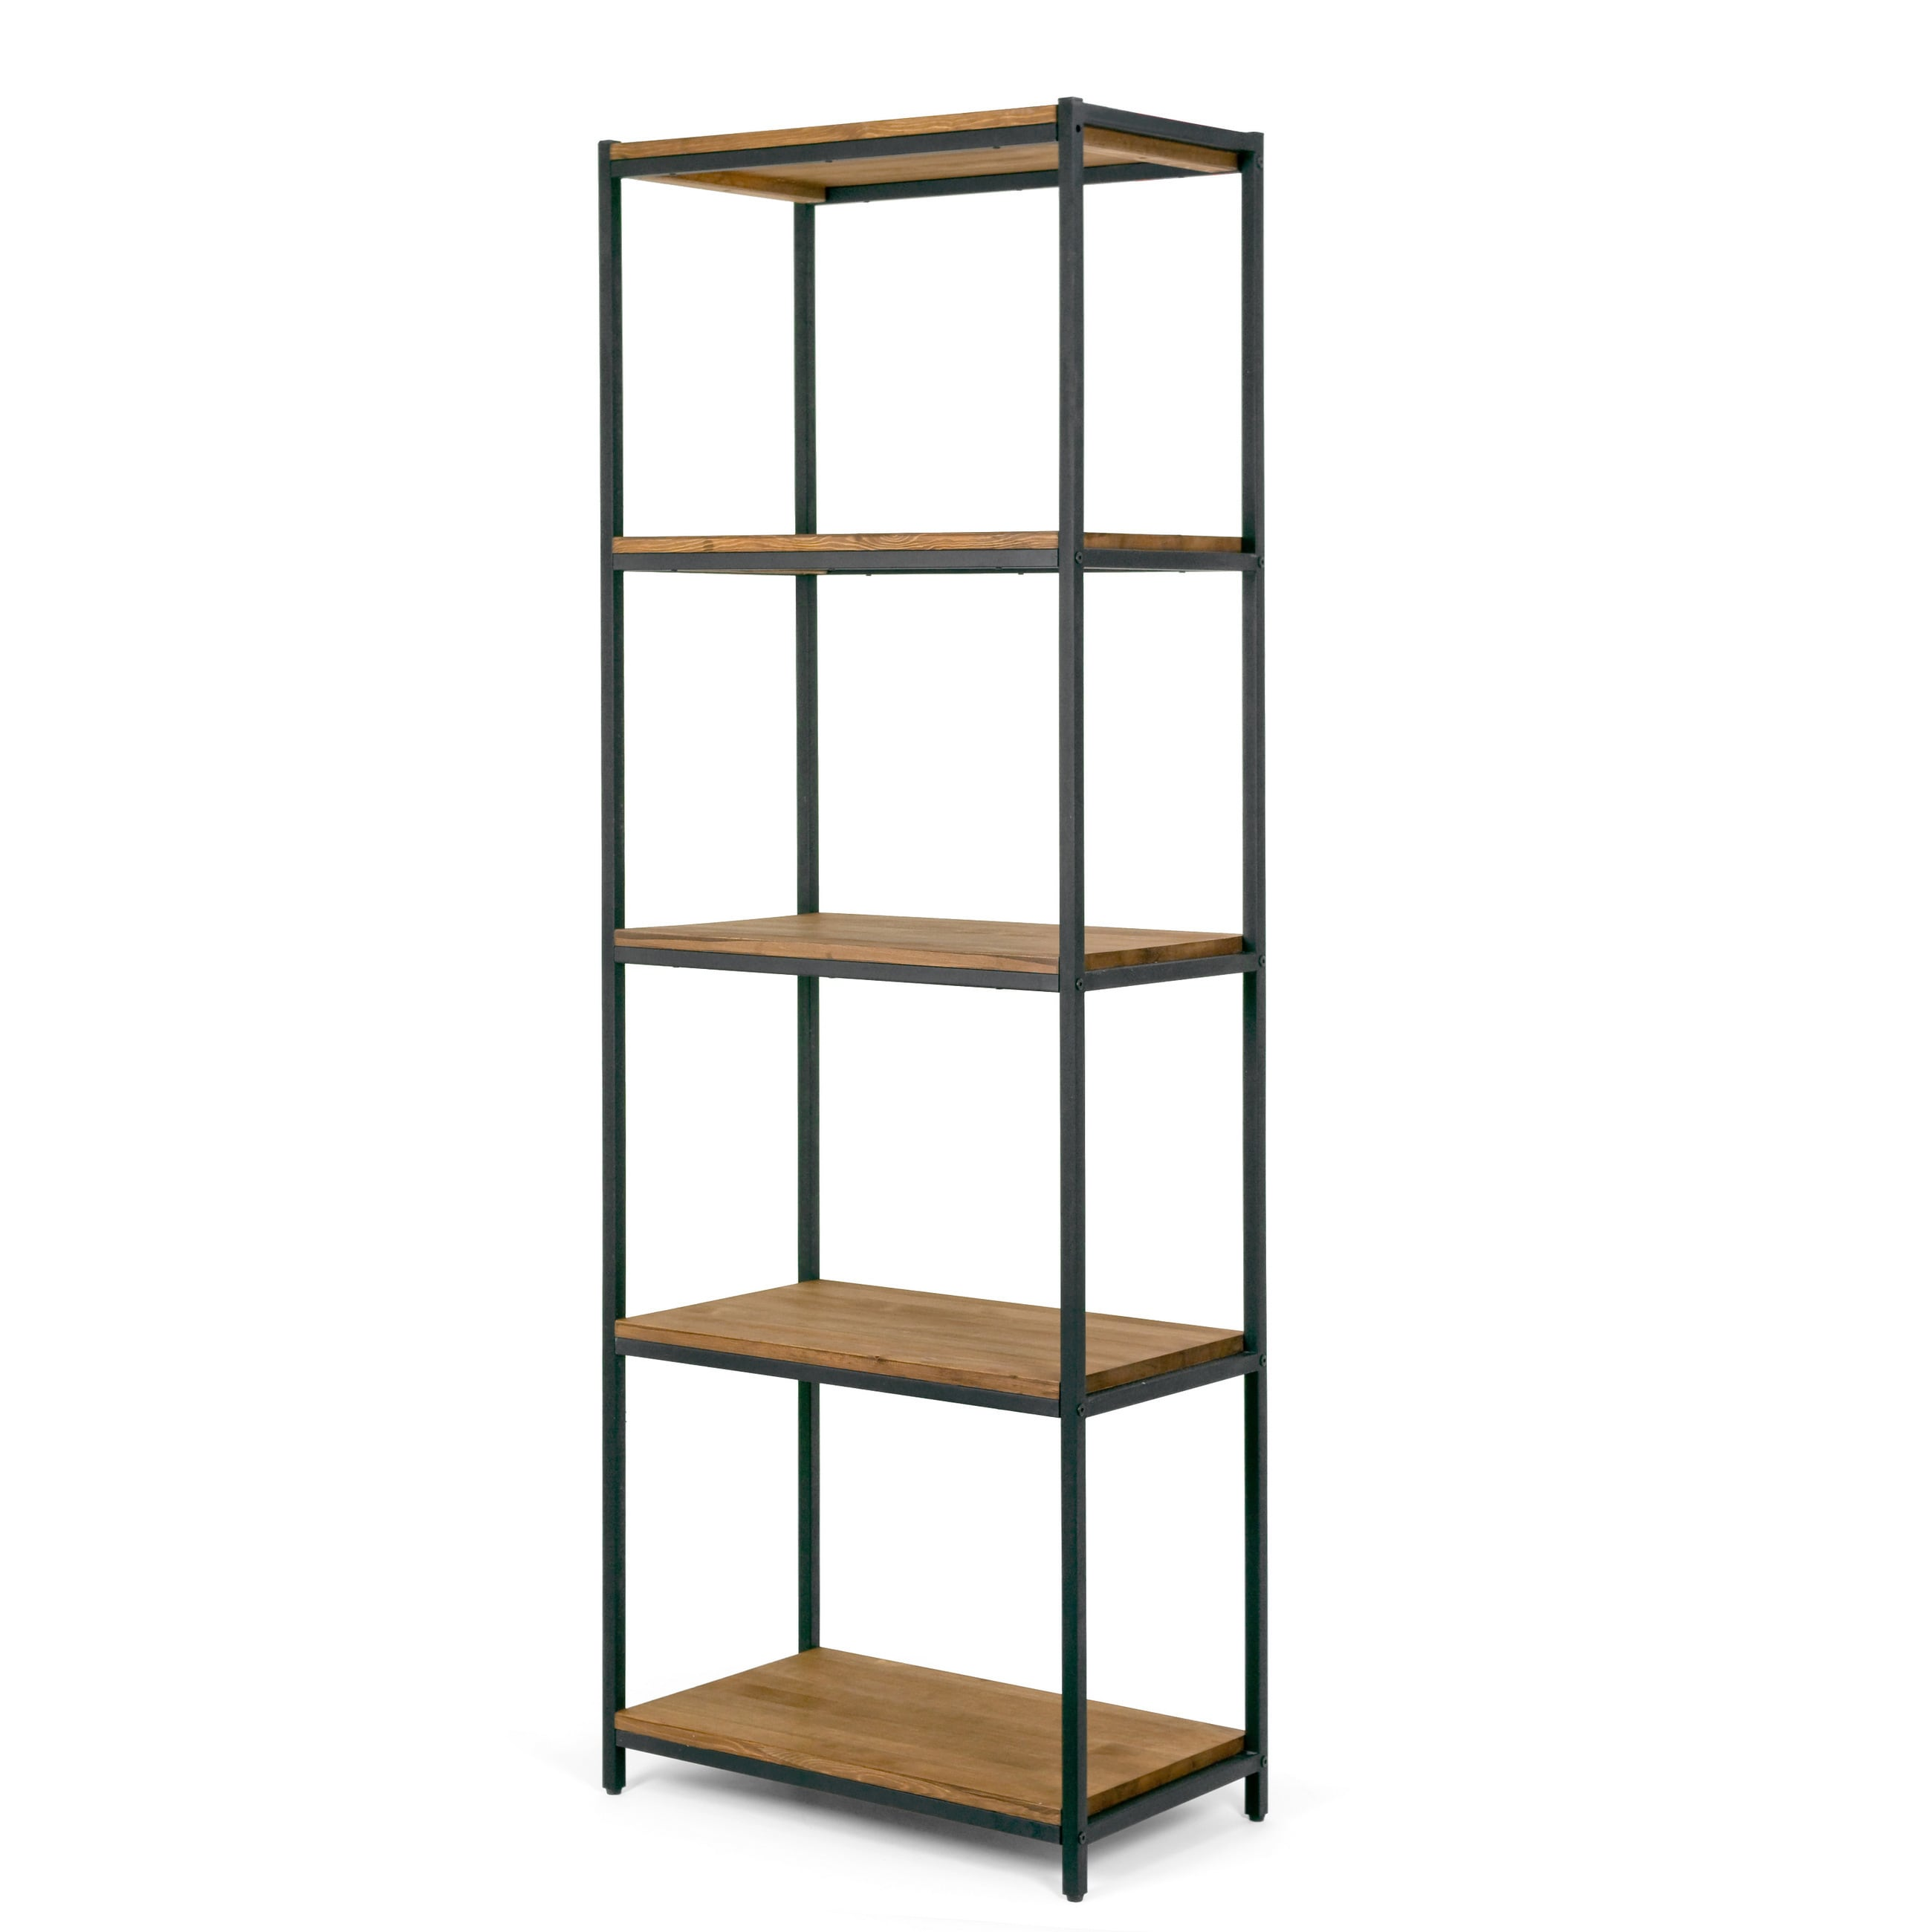 shelves decoration console ladder market bookcase aiden delightful extraordinary bookcases wood metal table shelf ideas modest and world with splendid